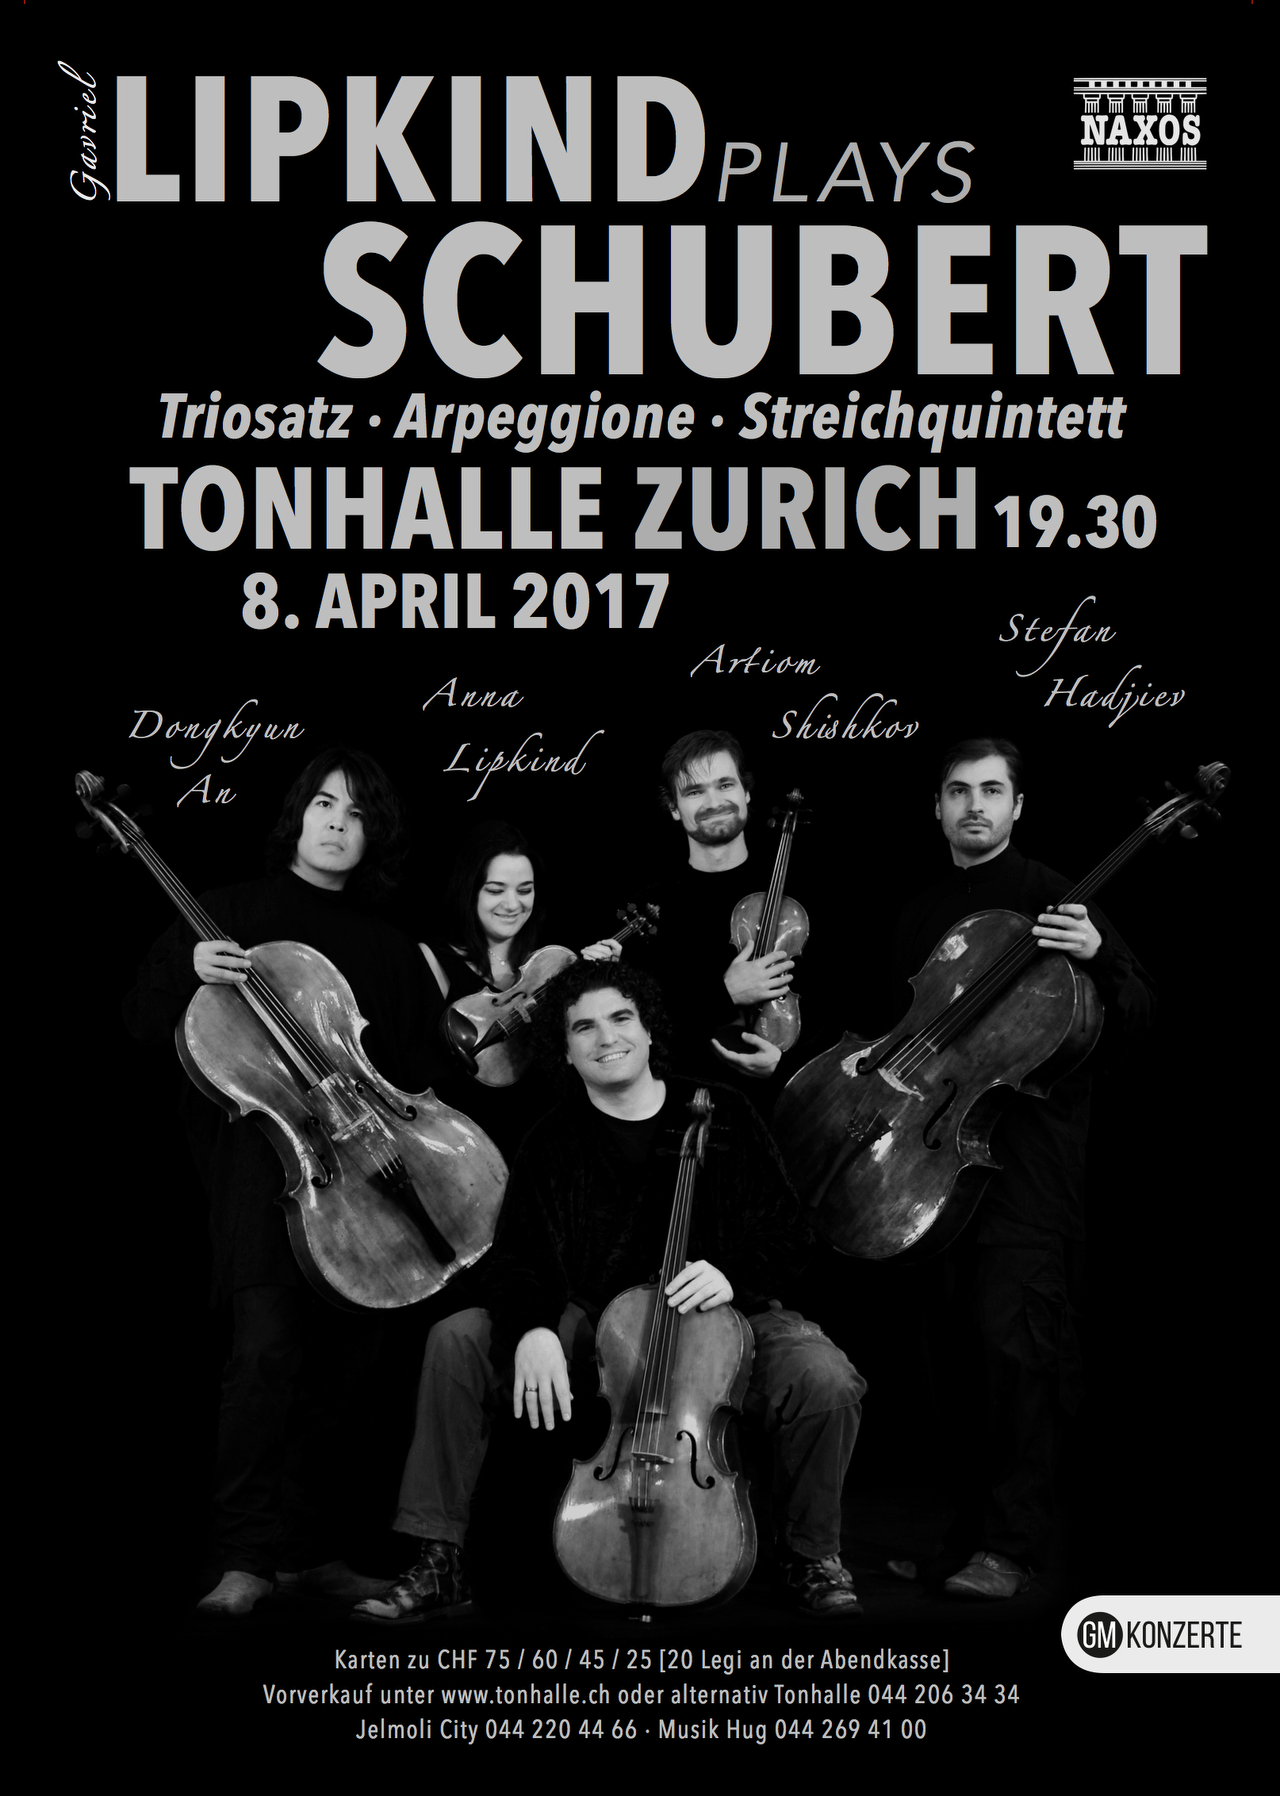 Lipkind plays Schubert · Tonhalle Zürich · April 8